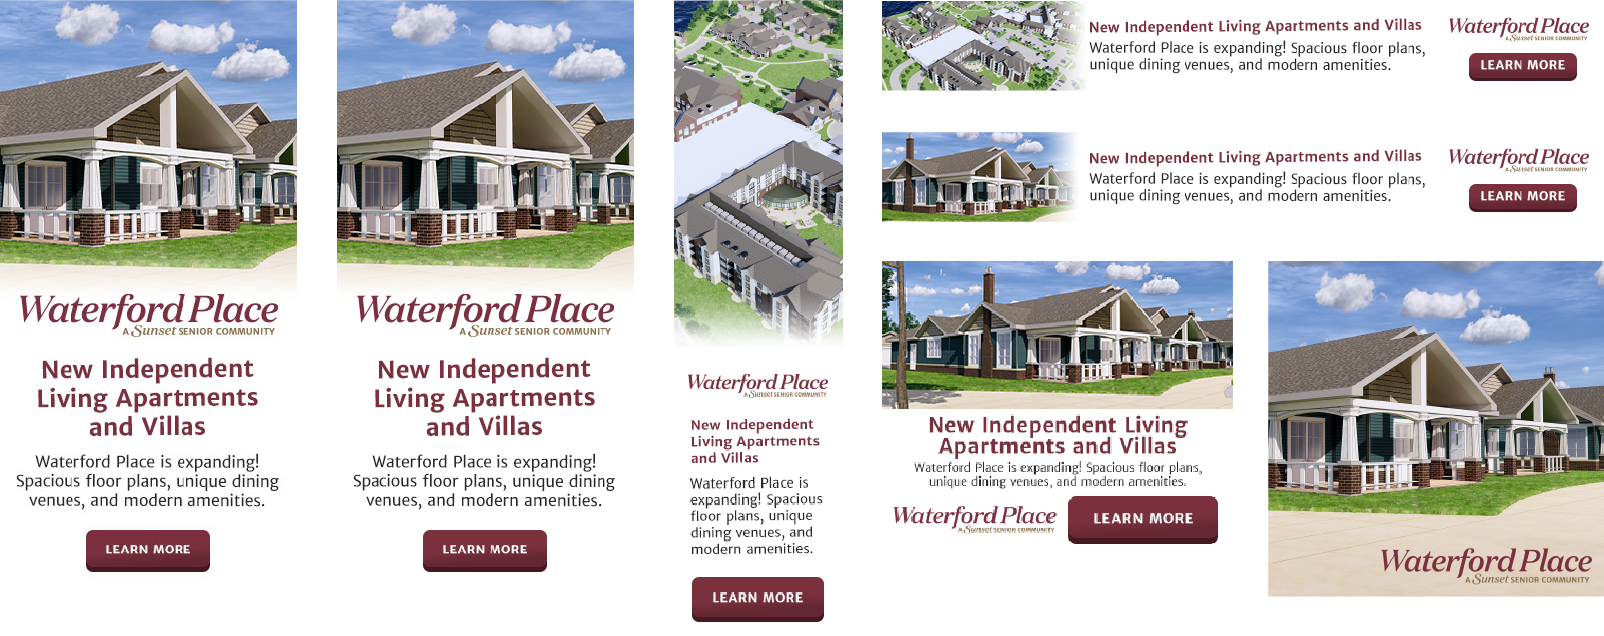 DVS Portfolio - Waterford Place Banner Ads